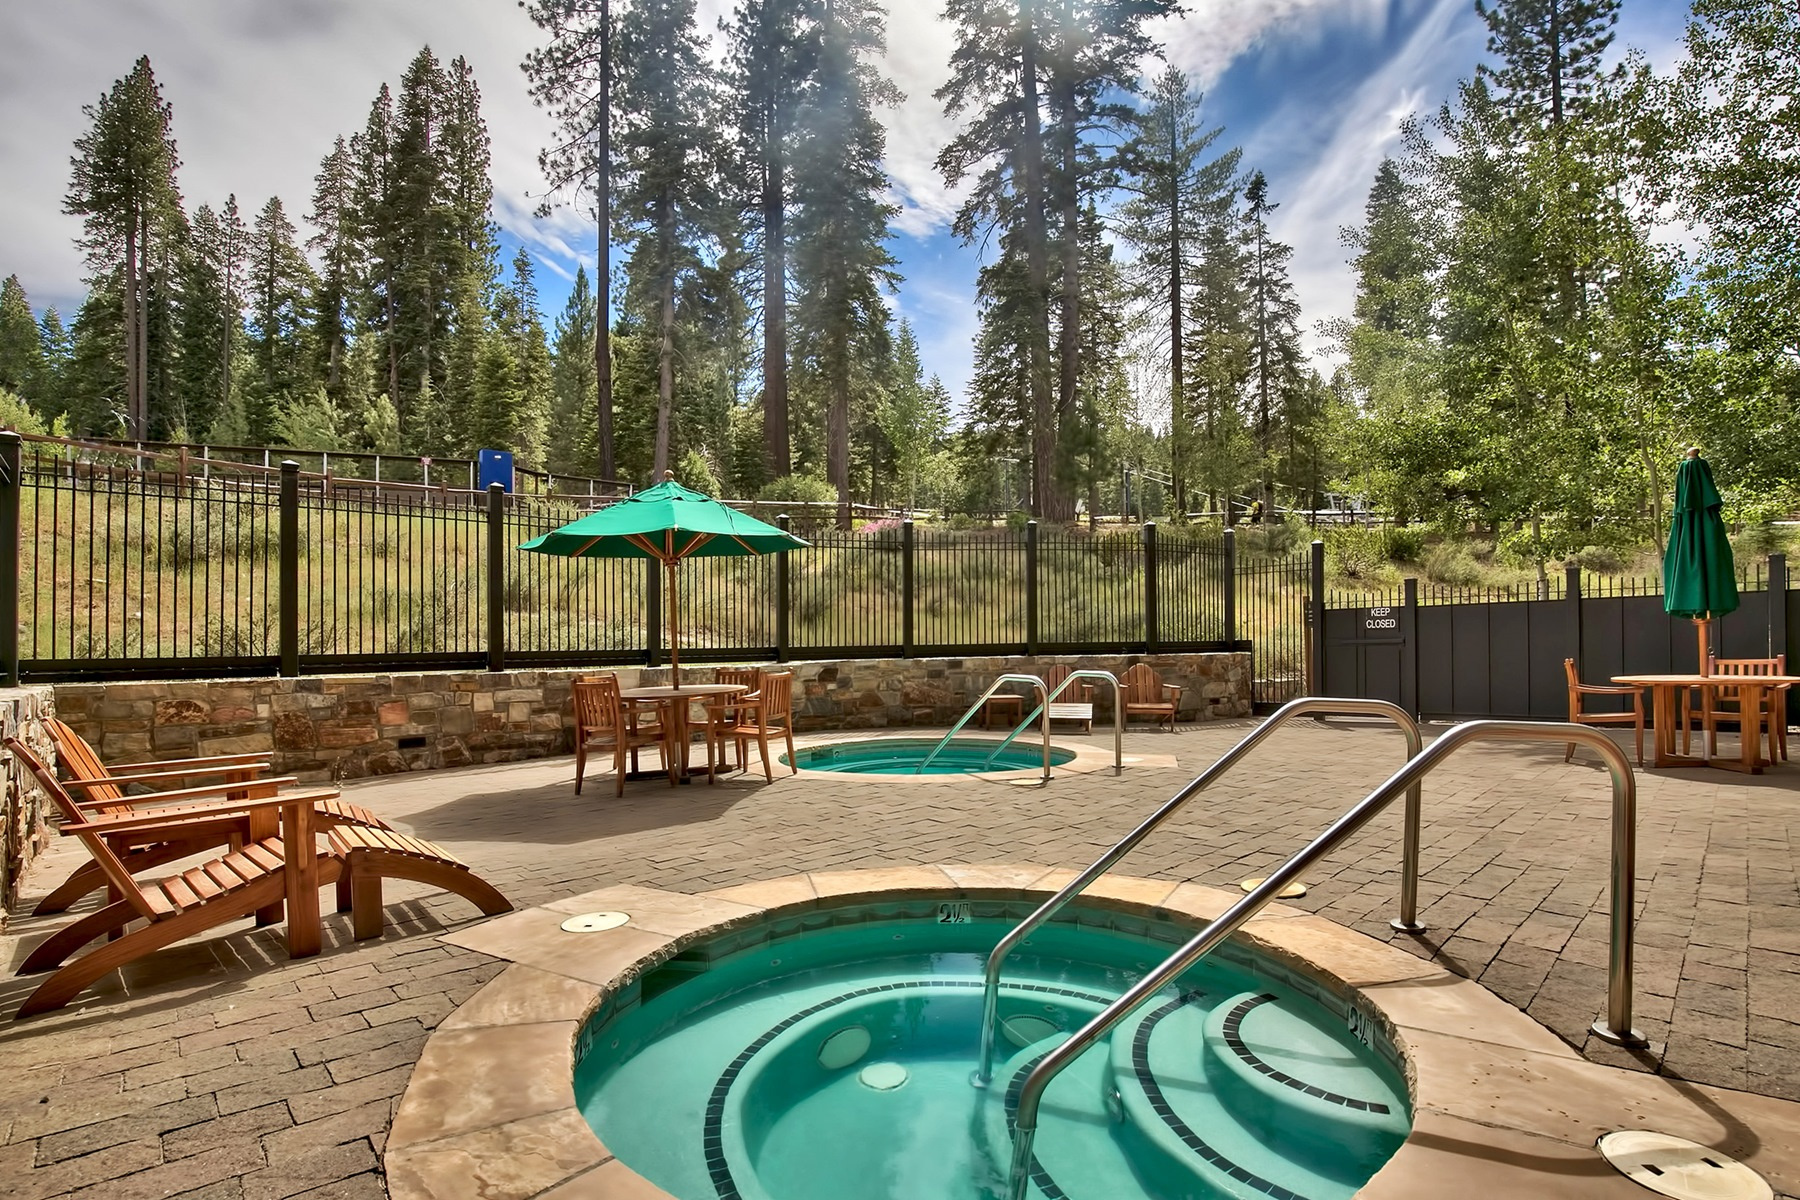 Additional photo for property listing at 8001 Northstar Drive #414, 4th week of March 8001 Northstar Drive #414 4th Week of March Truckee, California 96161 United States